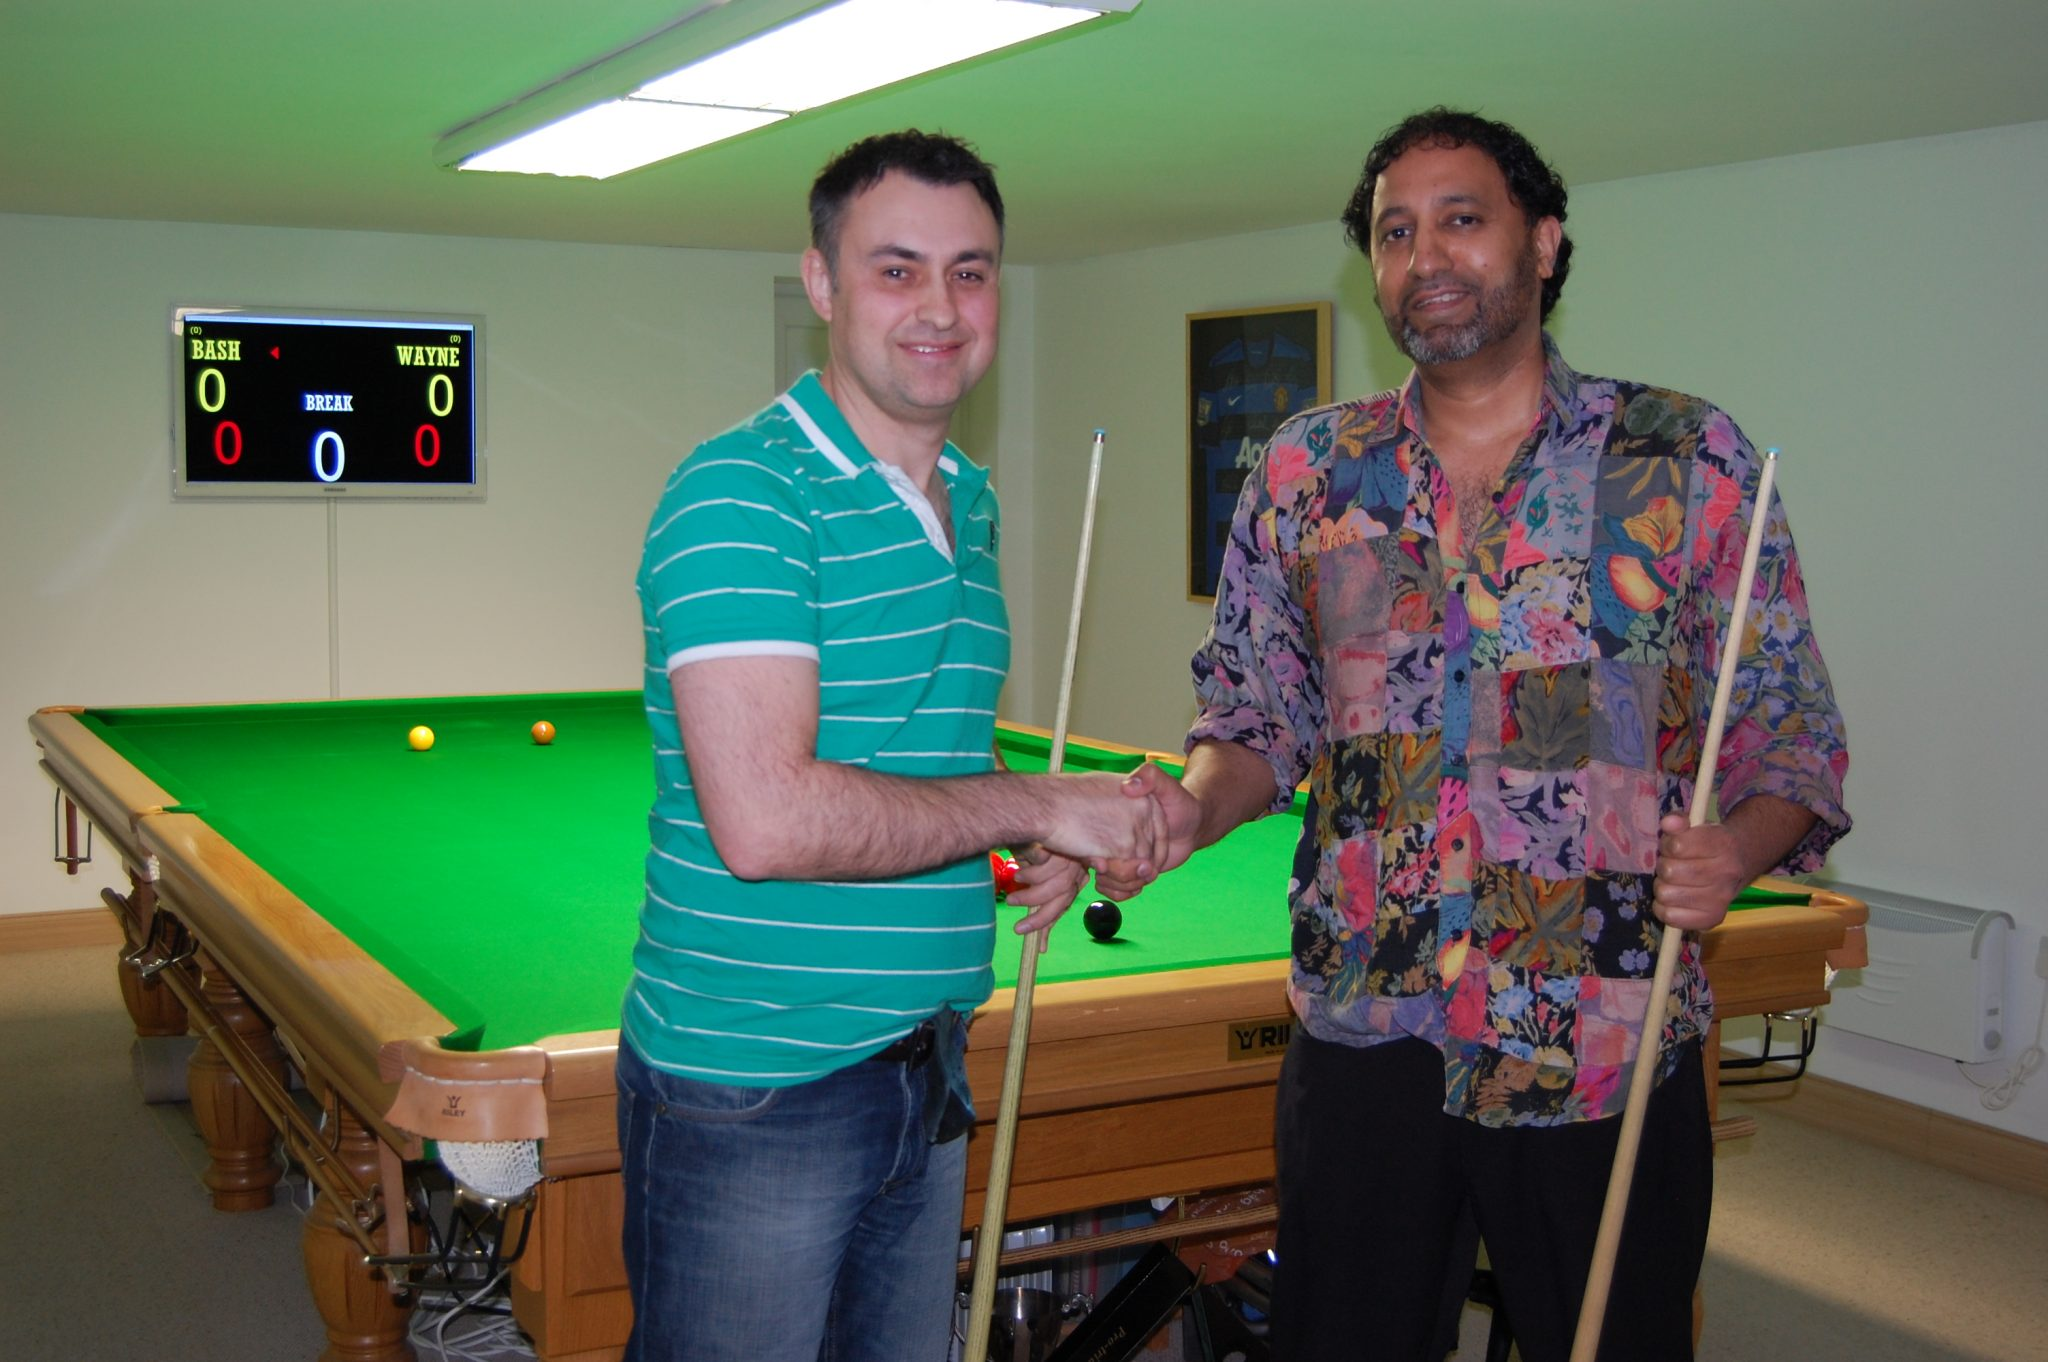 SF2: Wayne Martin 5-3 Bash Maqsood